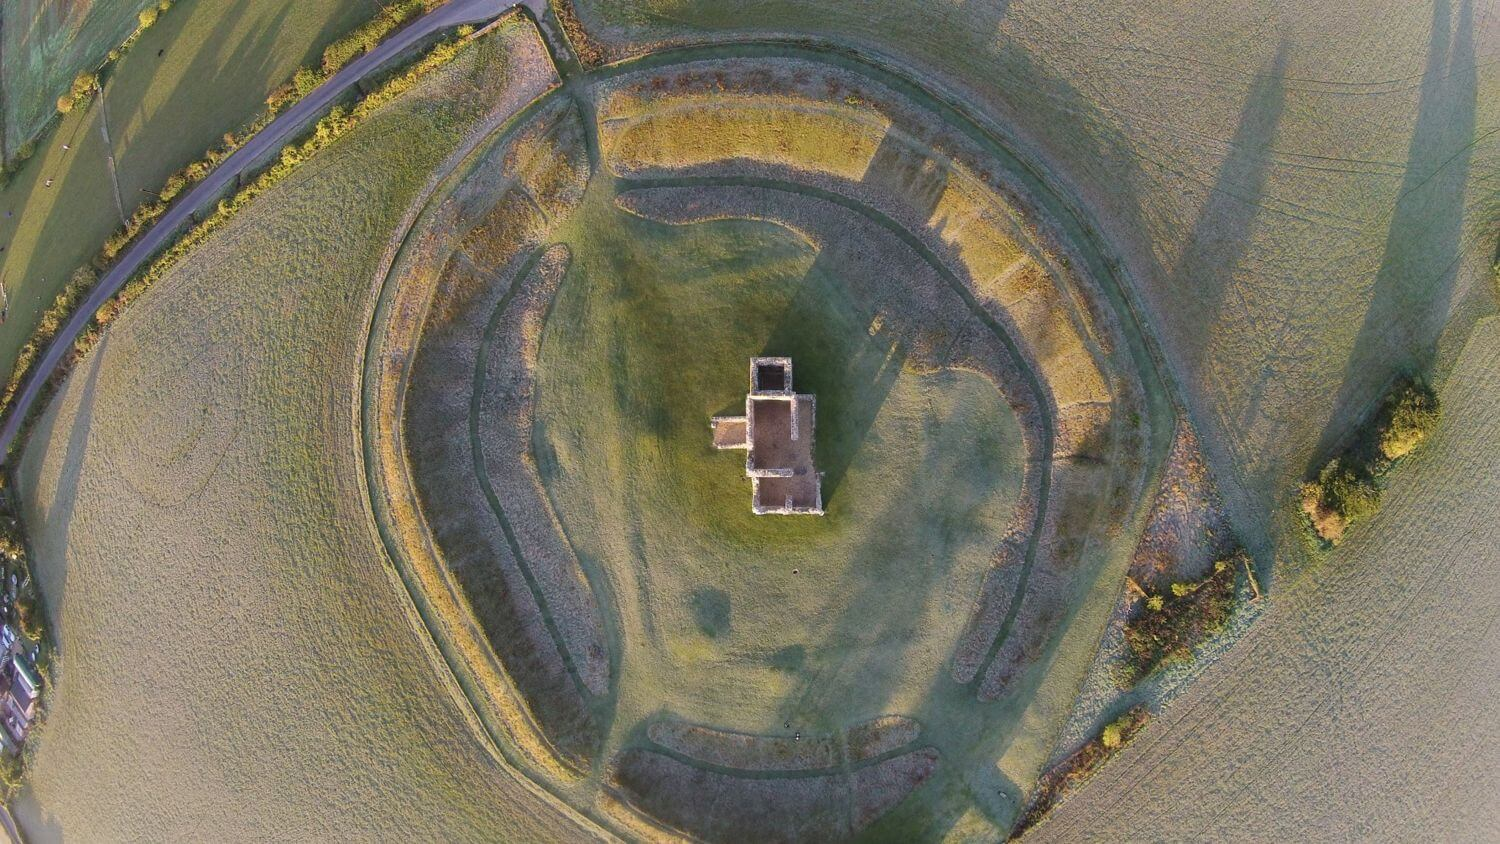 400ft Britain - Drone Photography & Videography Competition Launched By CAA & VisitEngland - Knowlton Church, Dorset